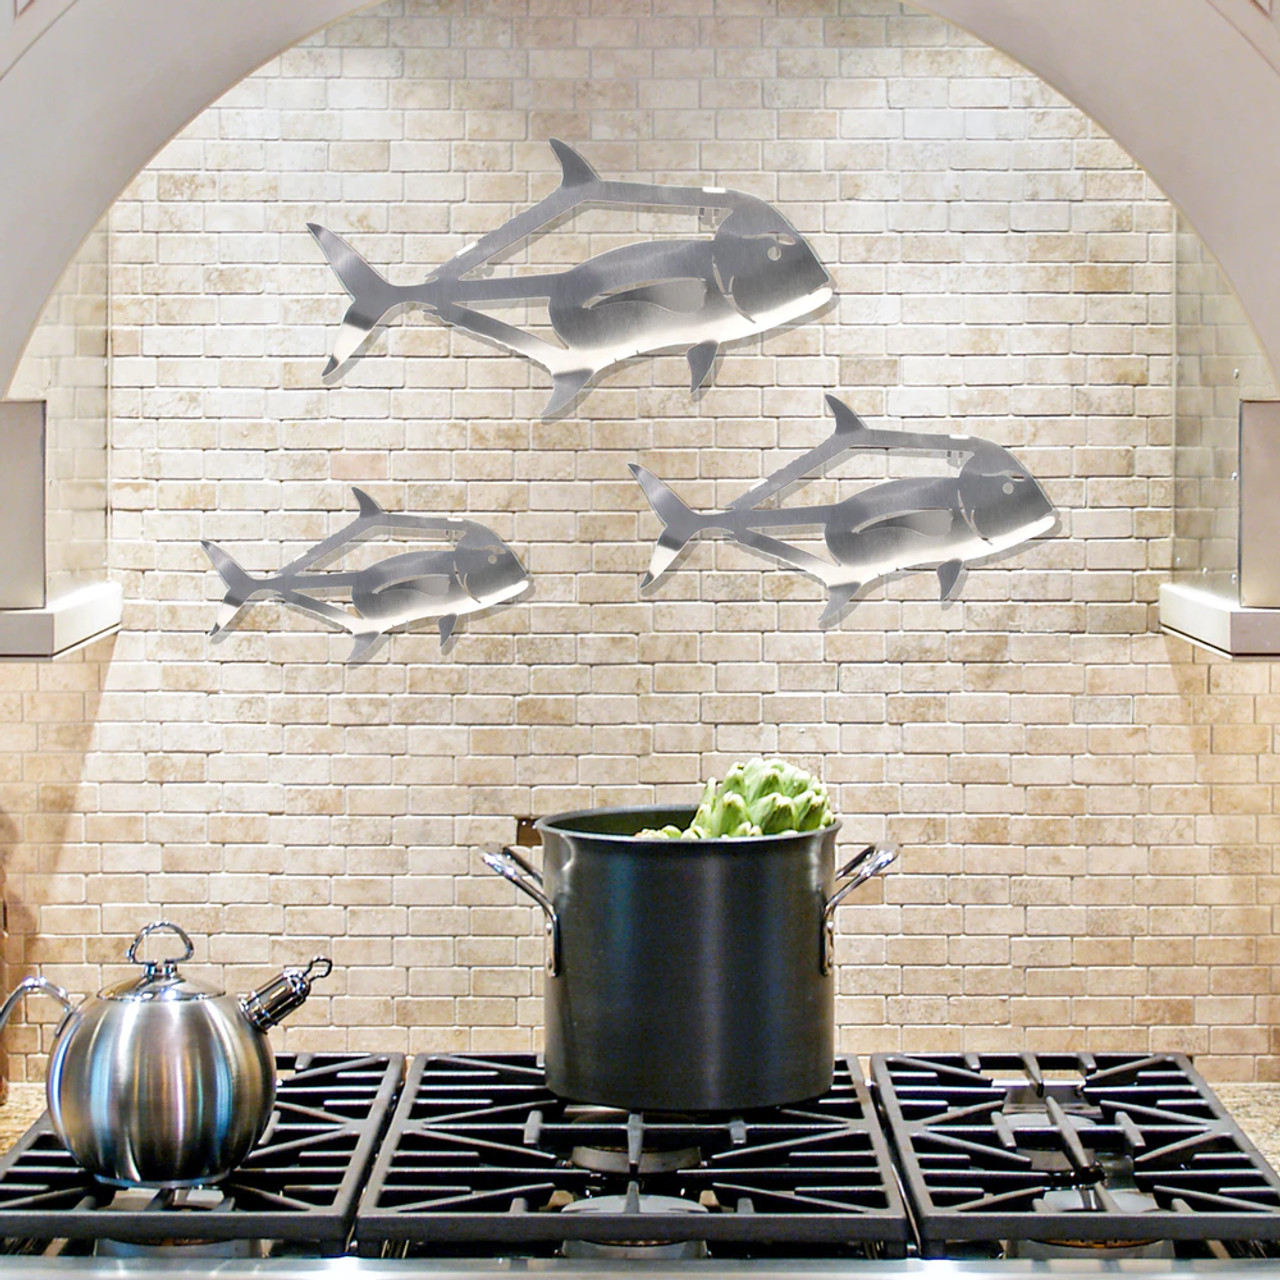 African Pompano Stainless Steel Wall Decor - Lifestyle